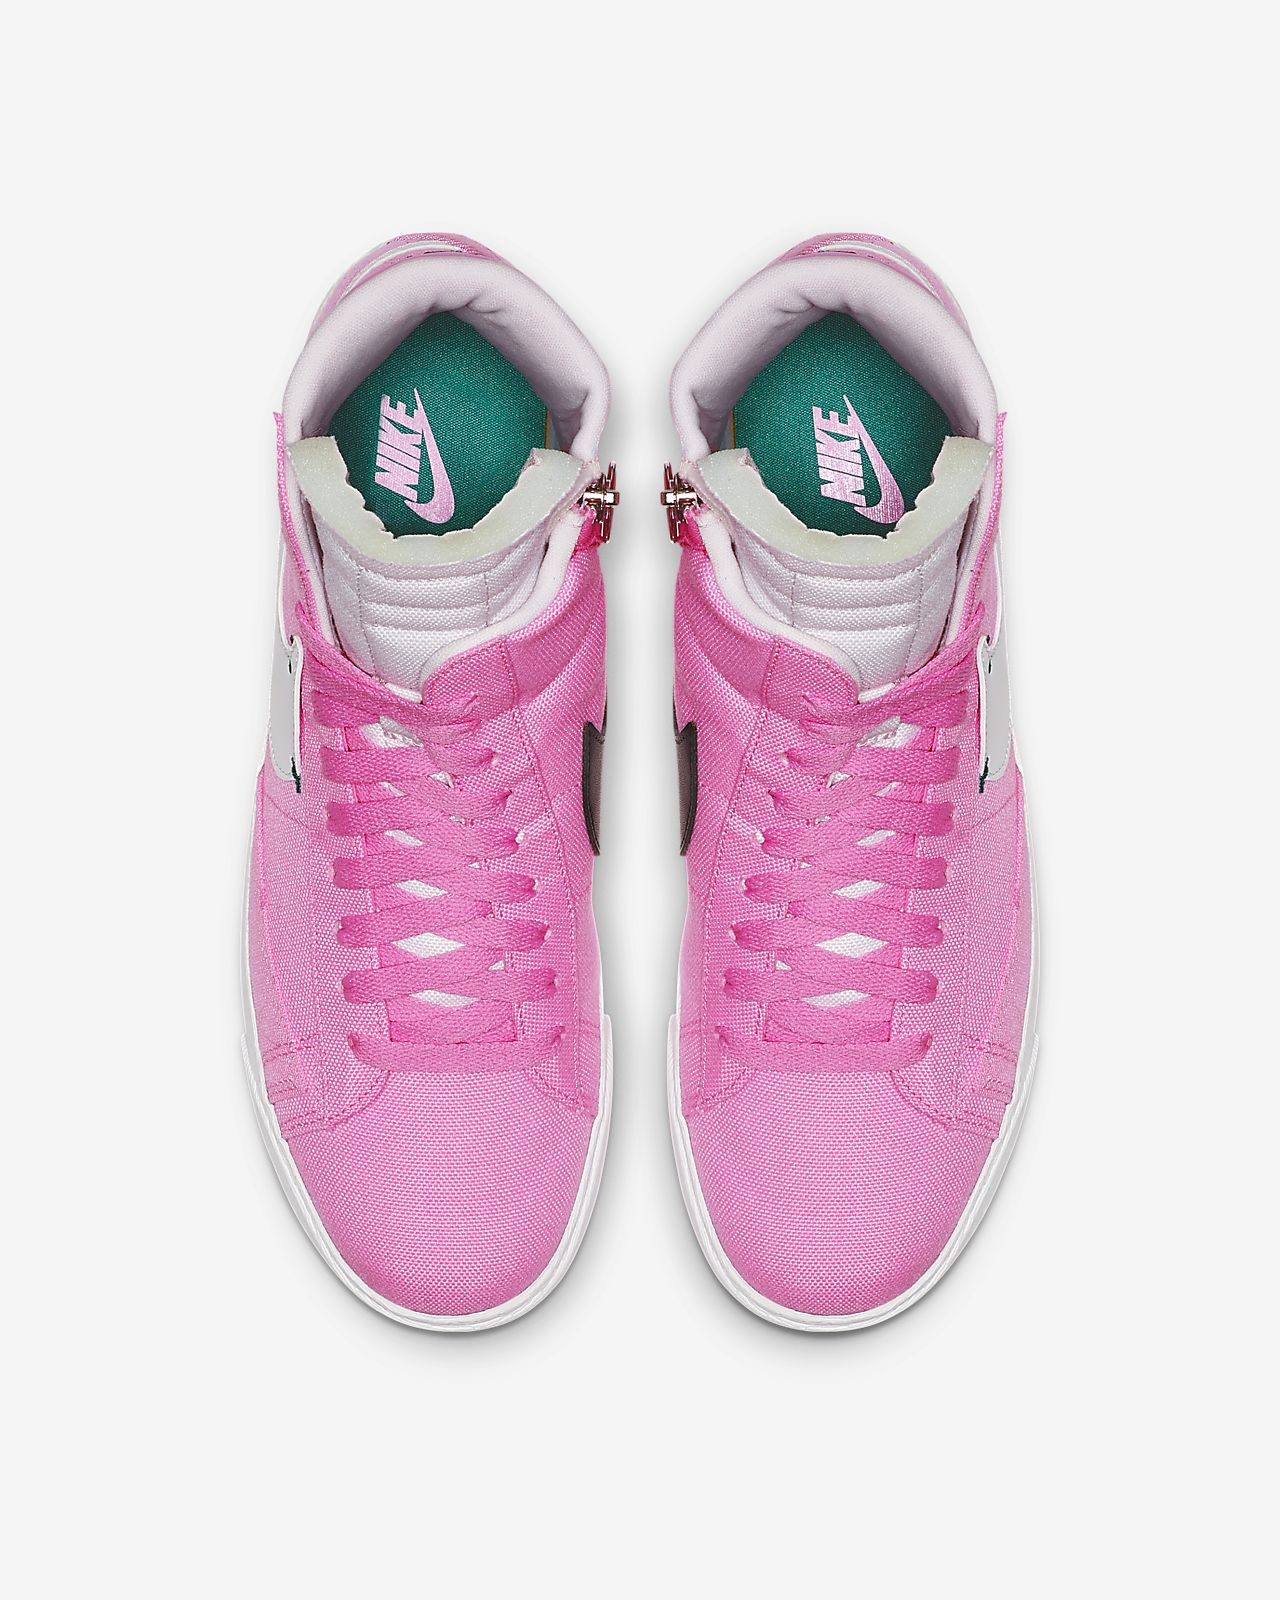 best sneakers 8a9b2 1c280 ... Chaussure Nike Blazer Mid Rebel pour Femme